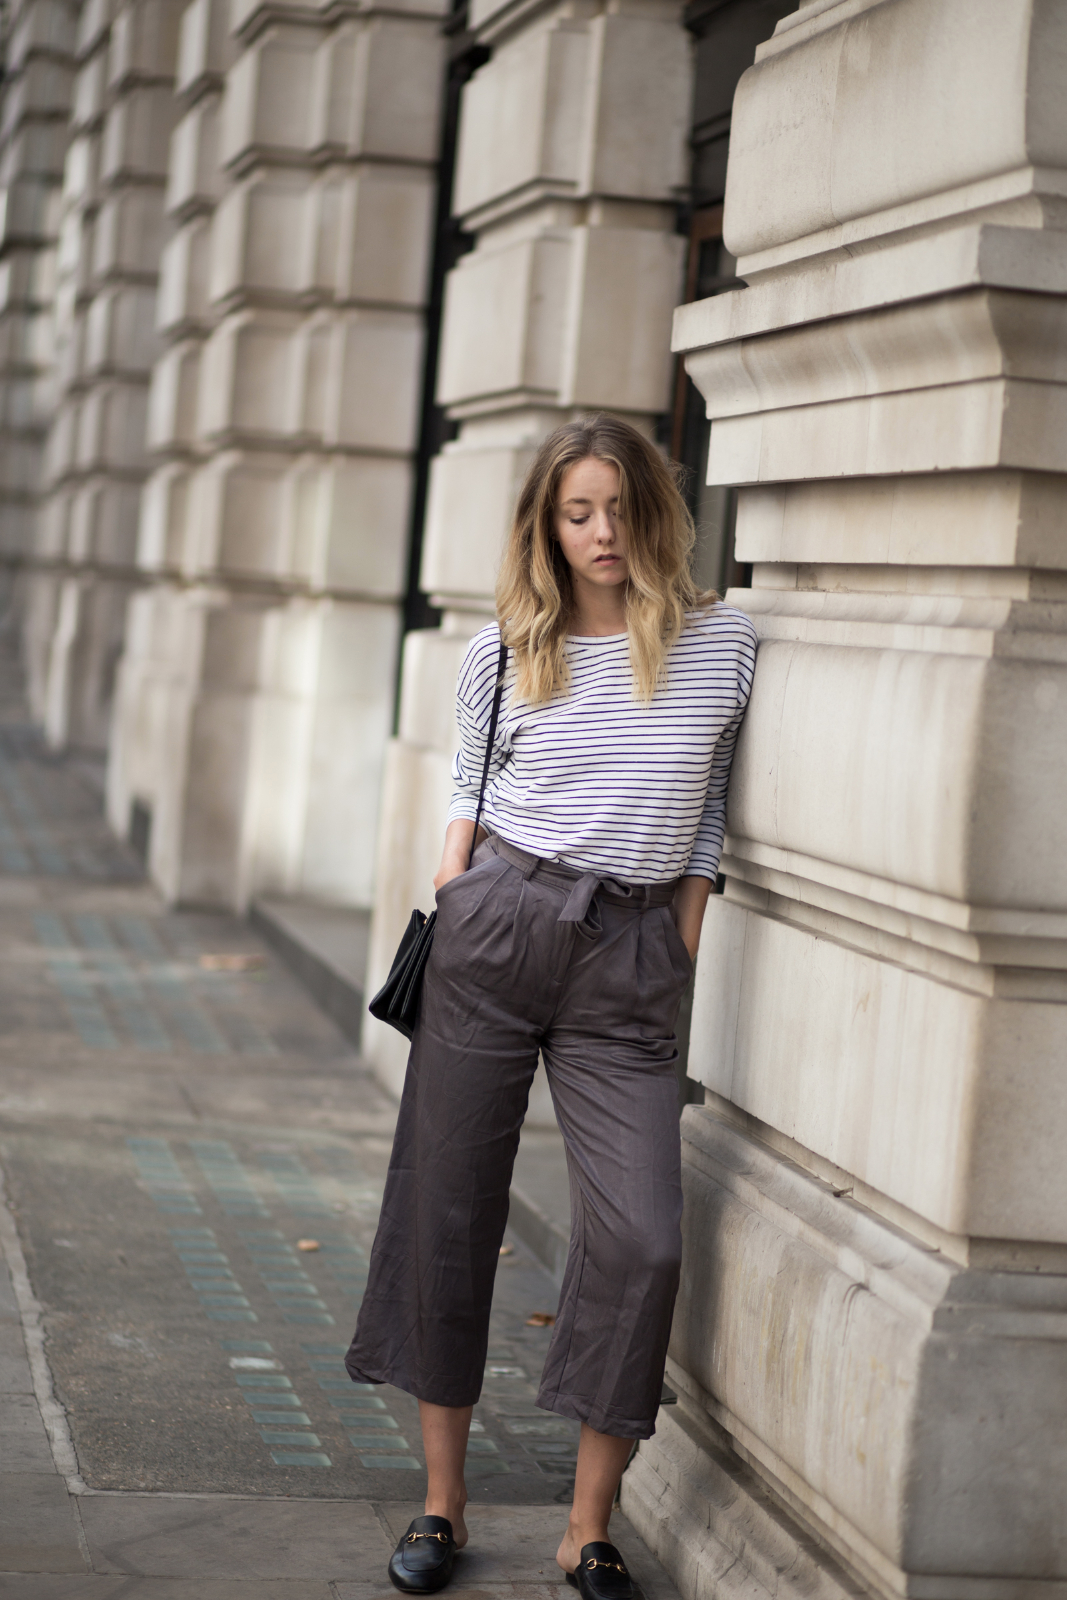 Fashion-Fashionblogger-Blogger-Berlin-Deutschland-Modeblog-Modeblogger London Travel Culottes Streifenshirt